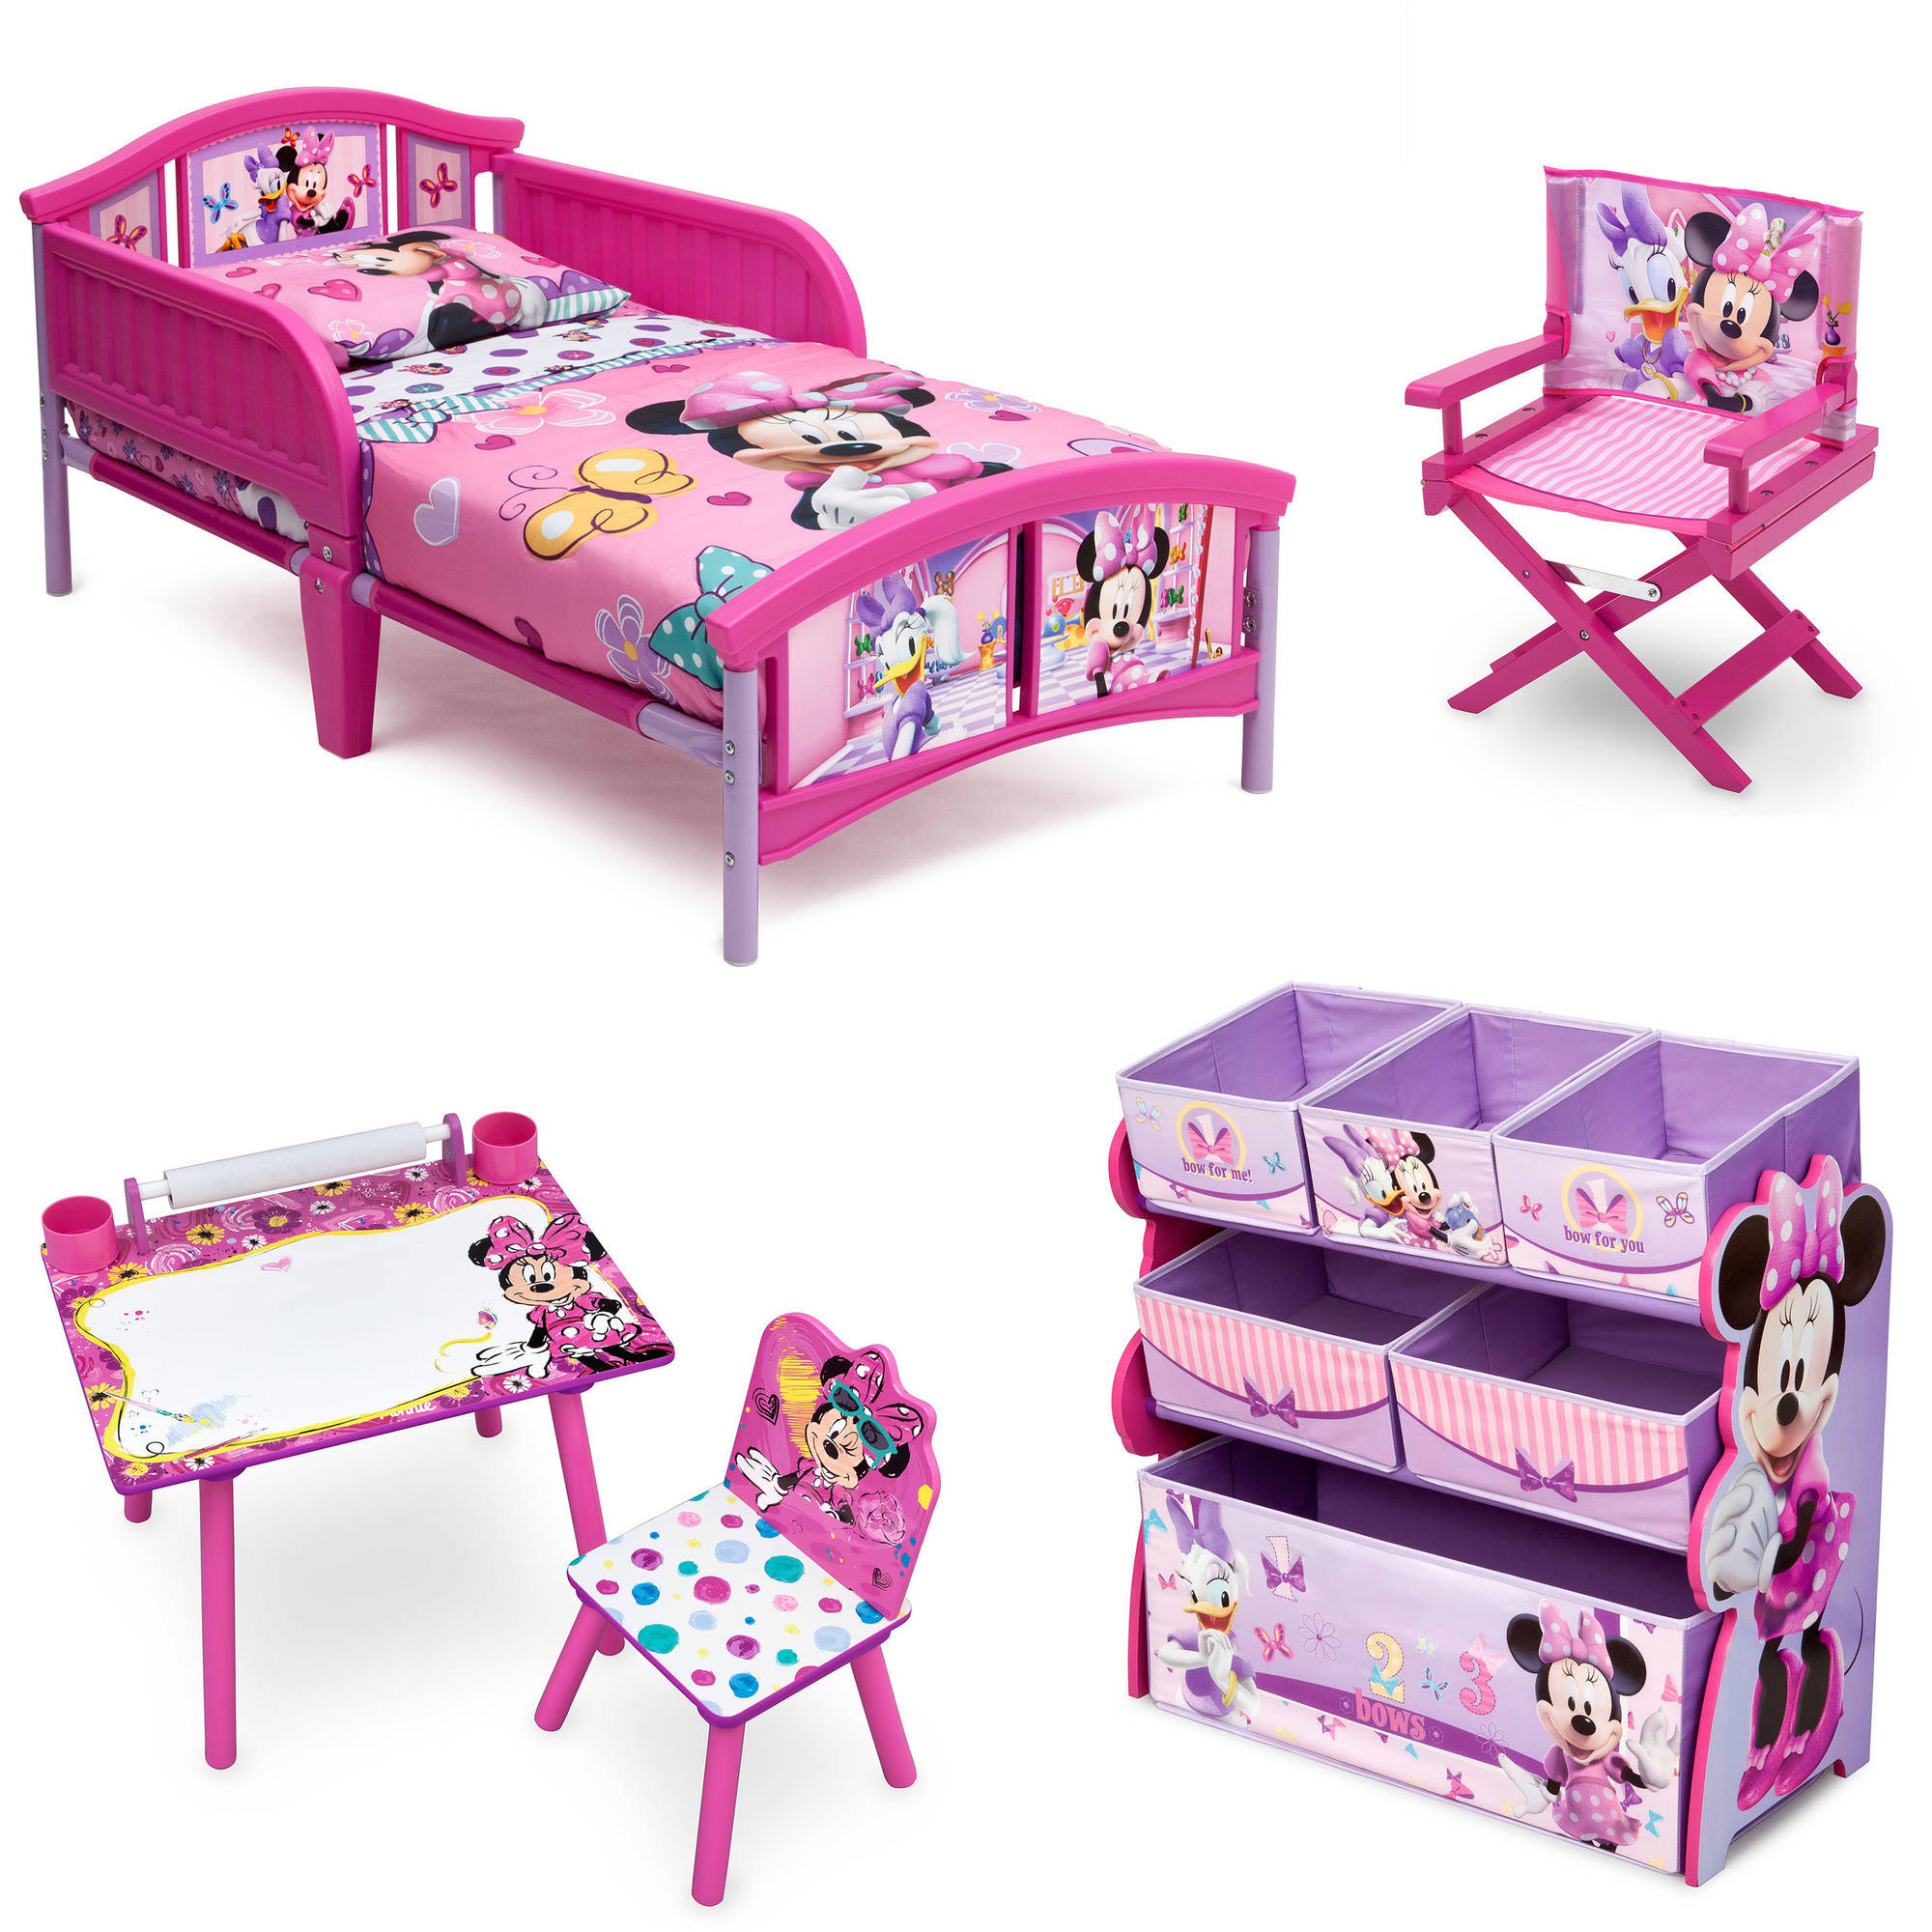 Disney Minnie Mouse Room-in-a-Box with Bonus Chair  sc 1 st  Walmart & Disney Minnie Mouse Room-in-a-Box with Bonus Chair - Walmart.com